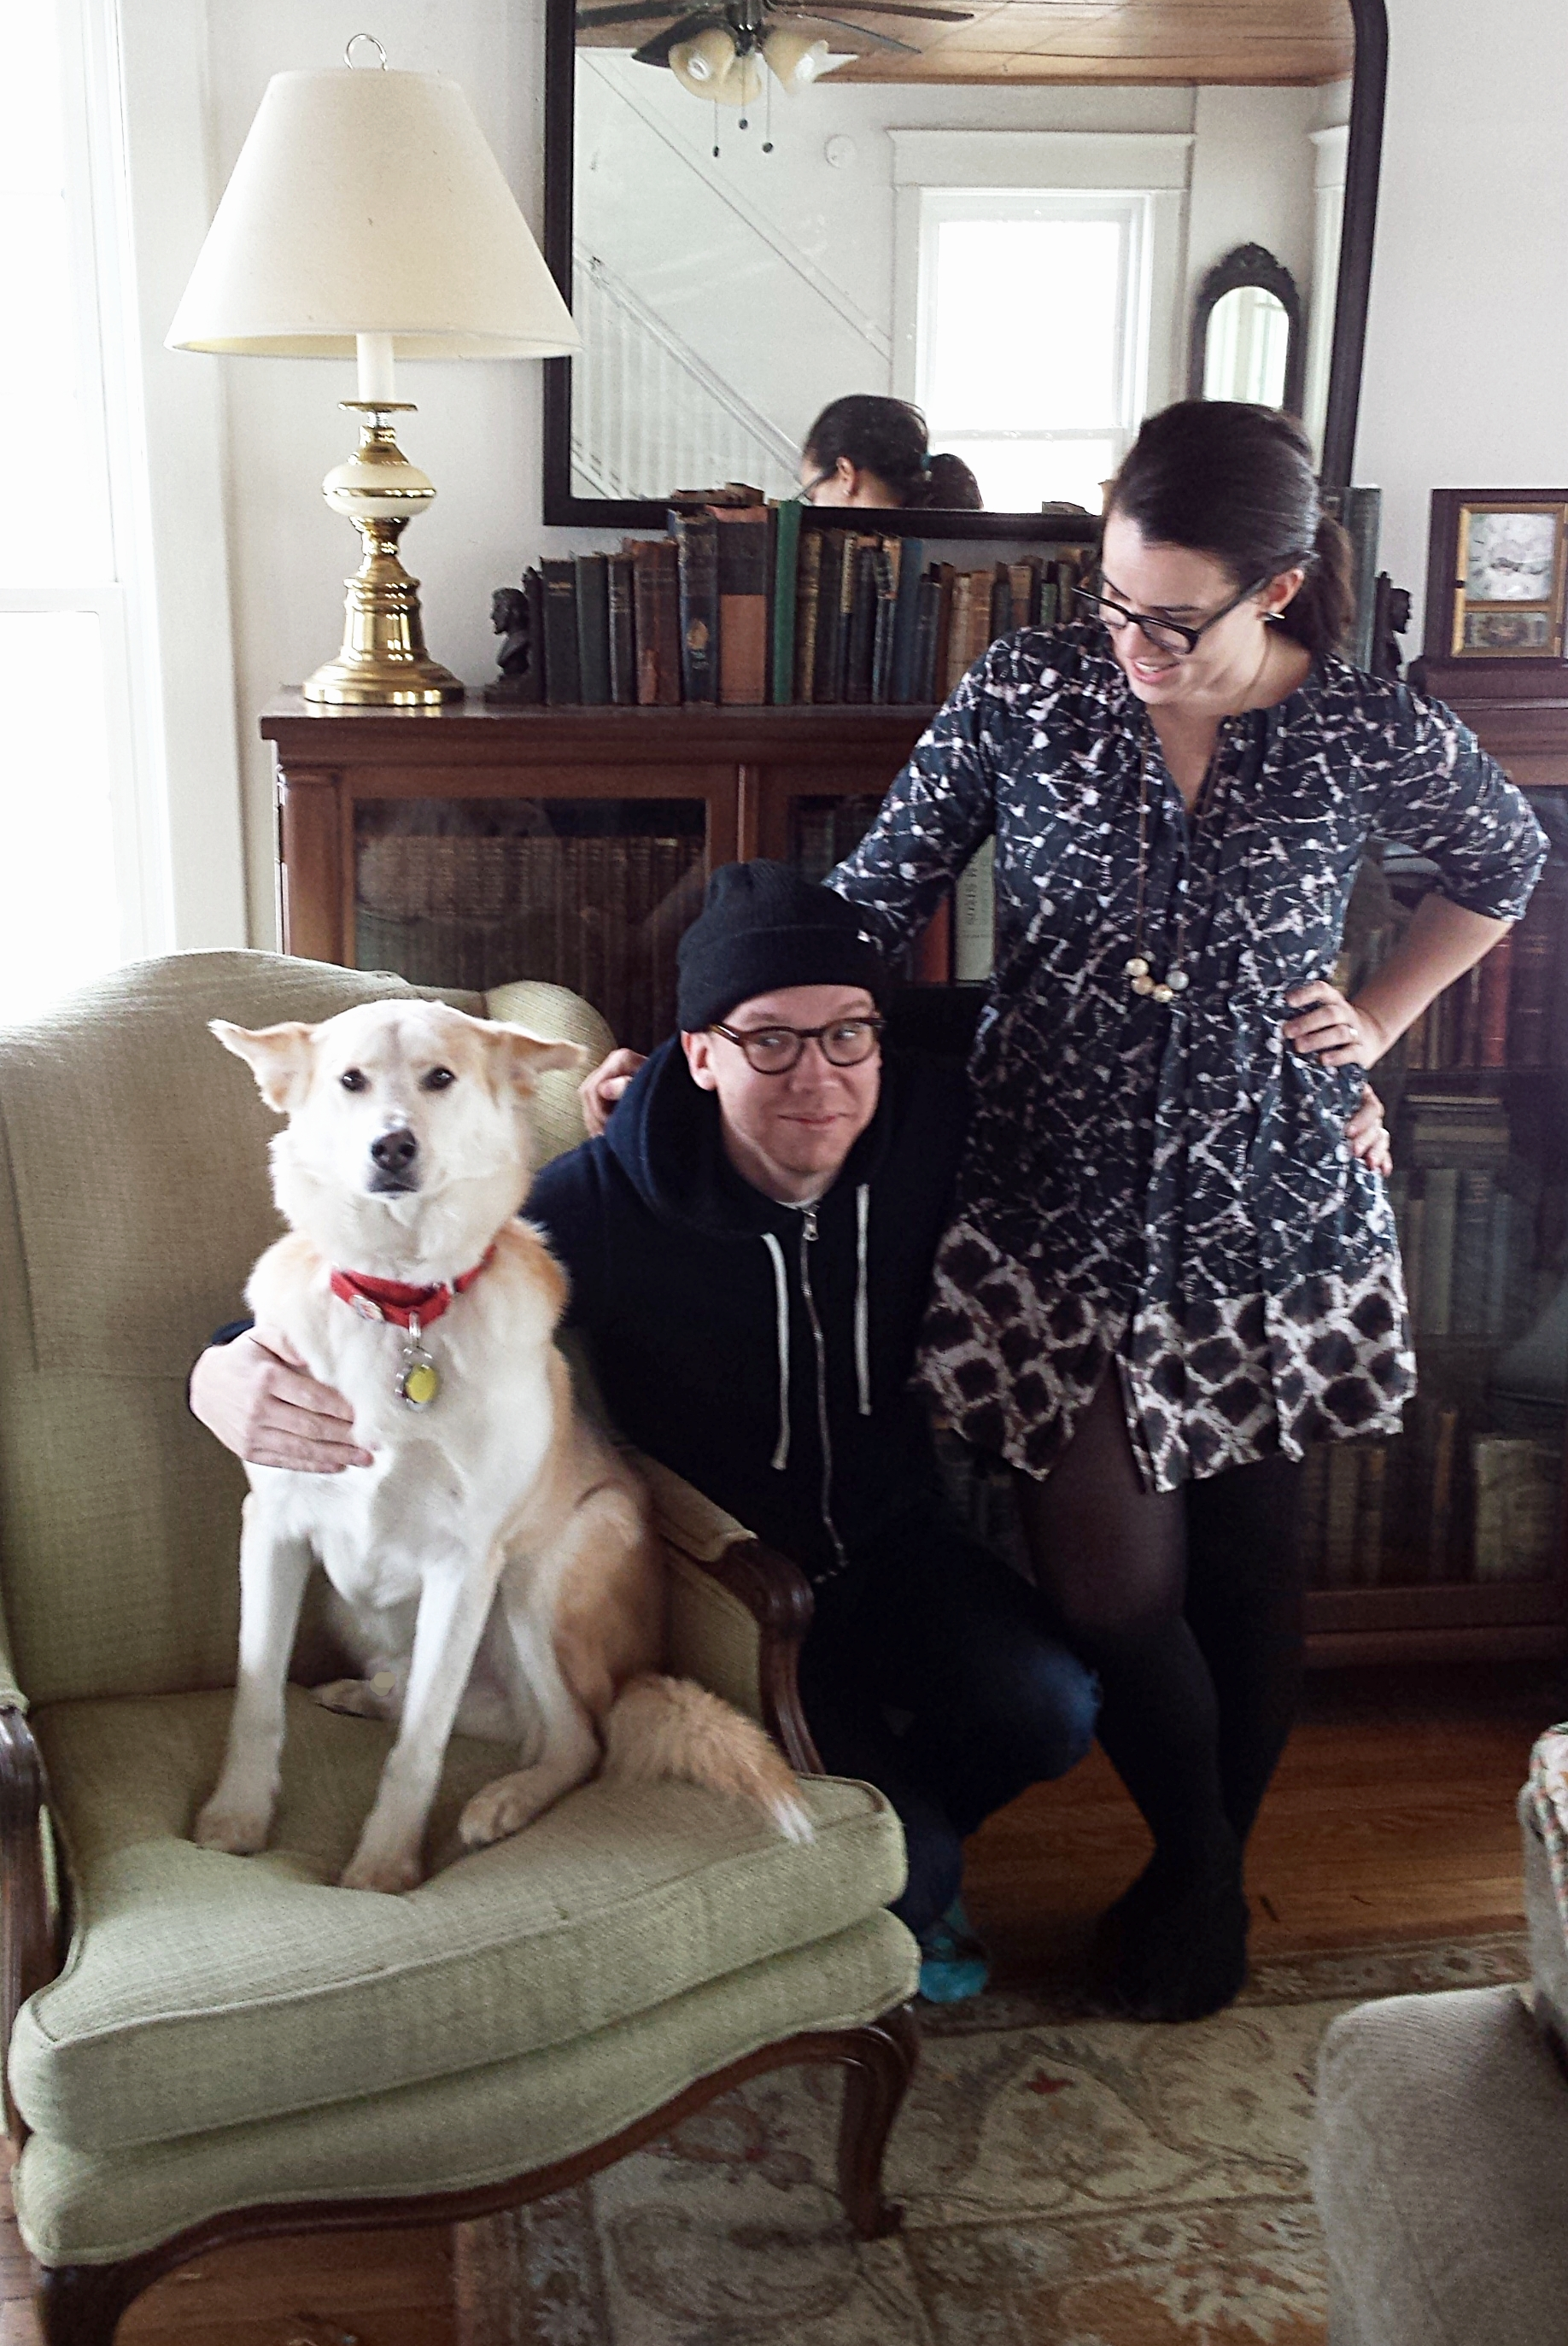 Loki greets Grownups Read Things They Wrote as Kids' host Dan Misener and producer Jenna Zuschlag-Misener